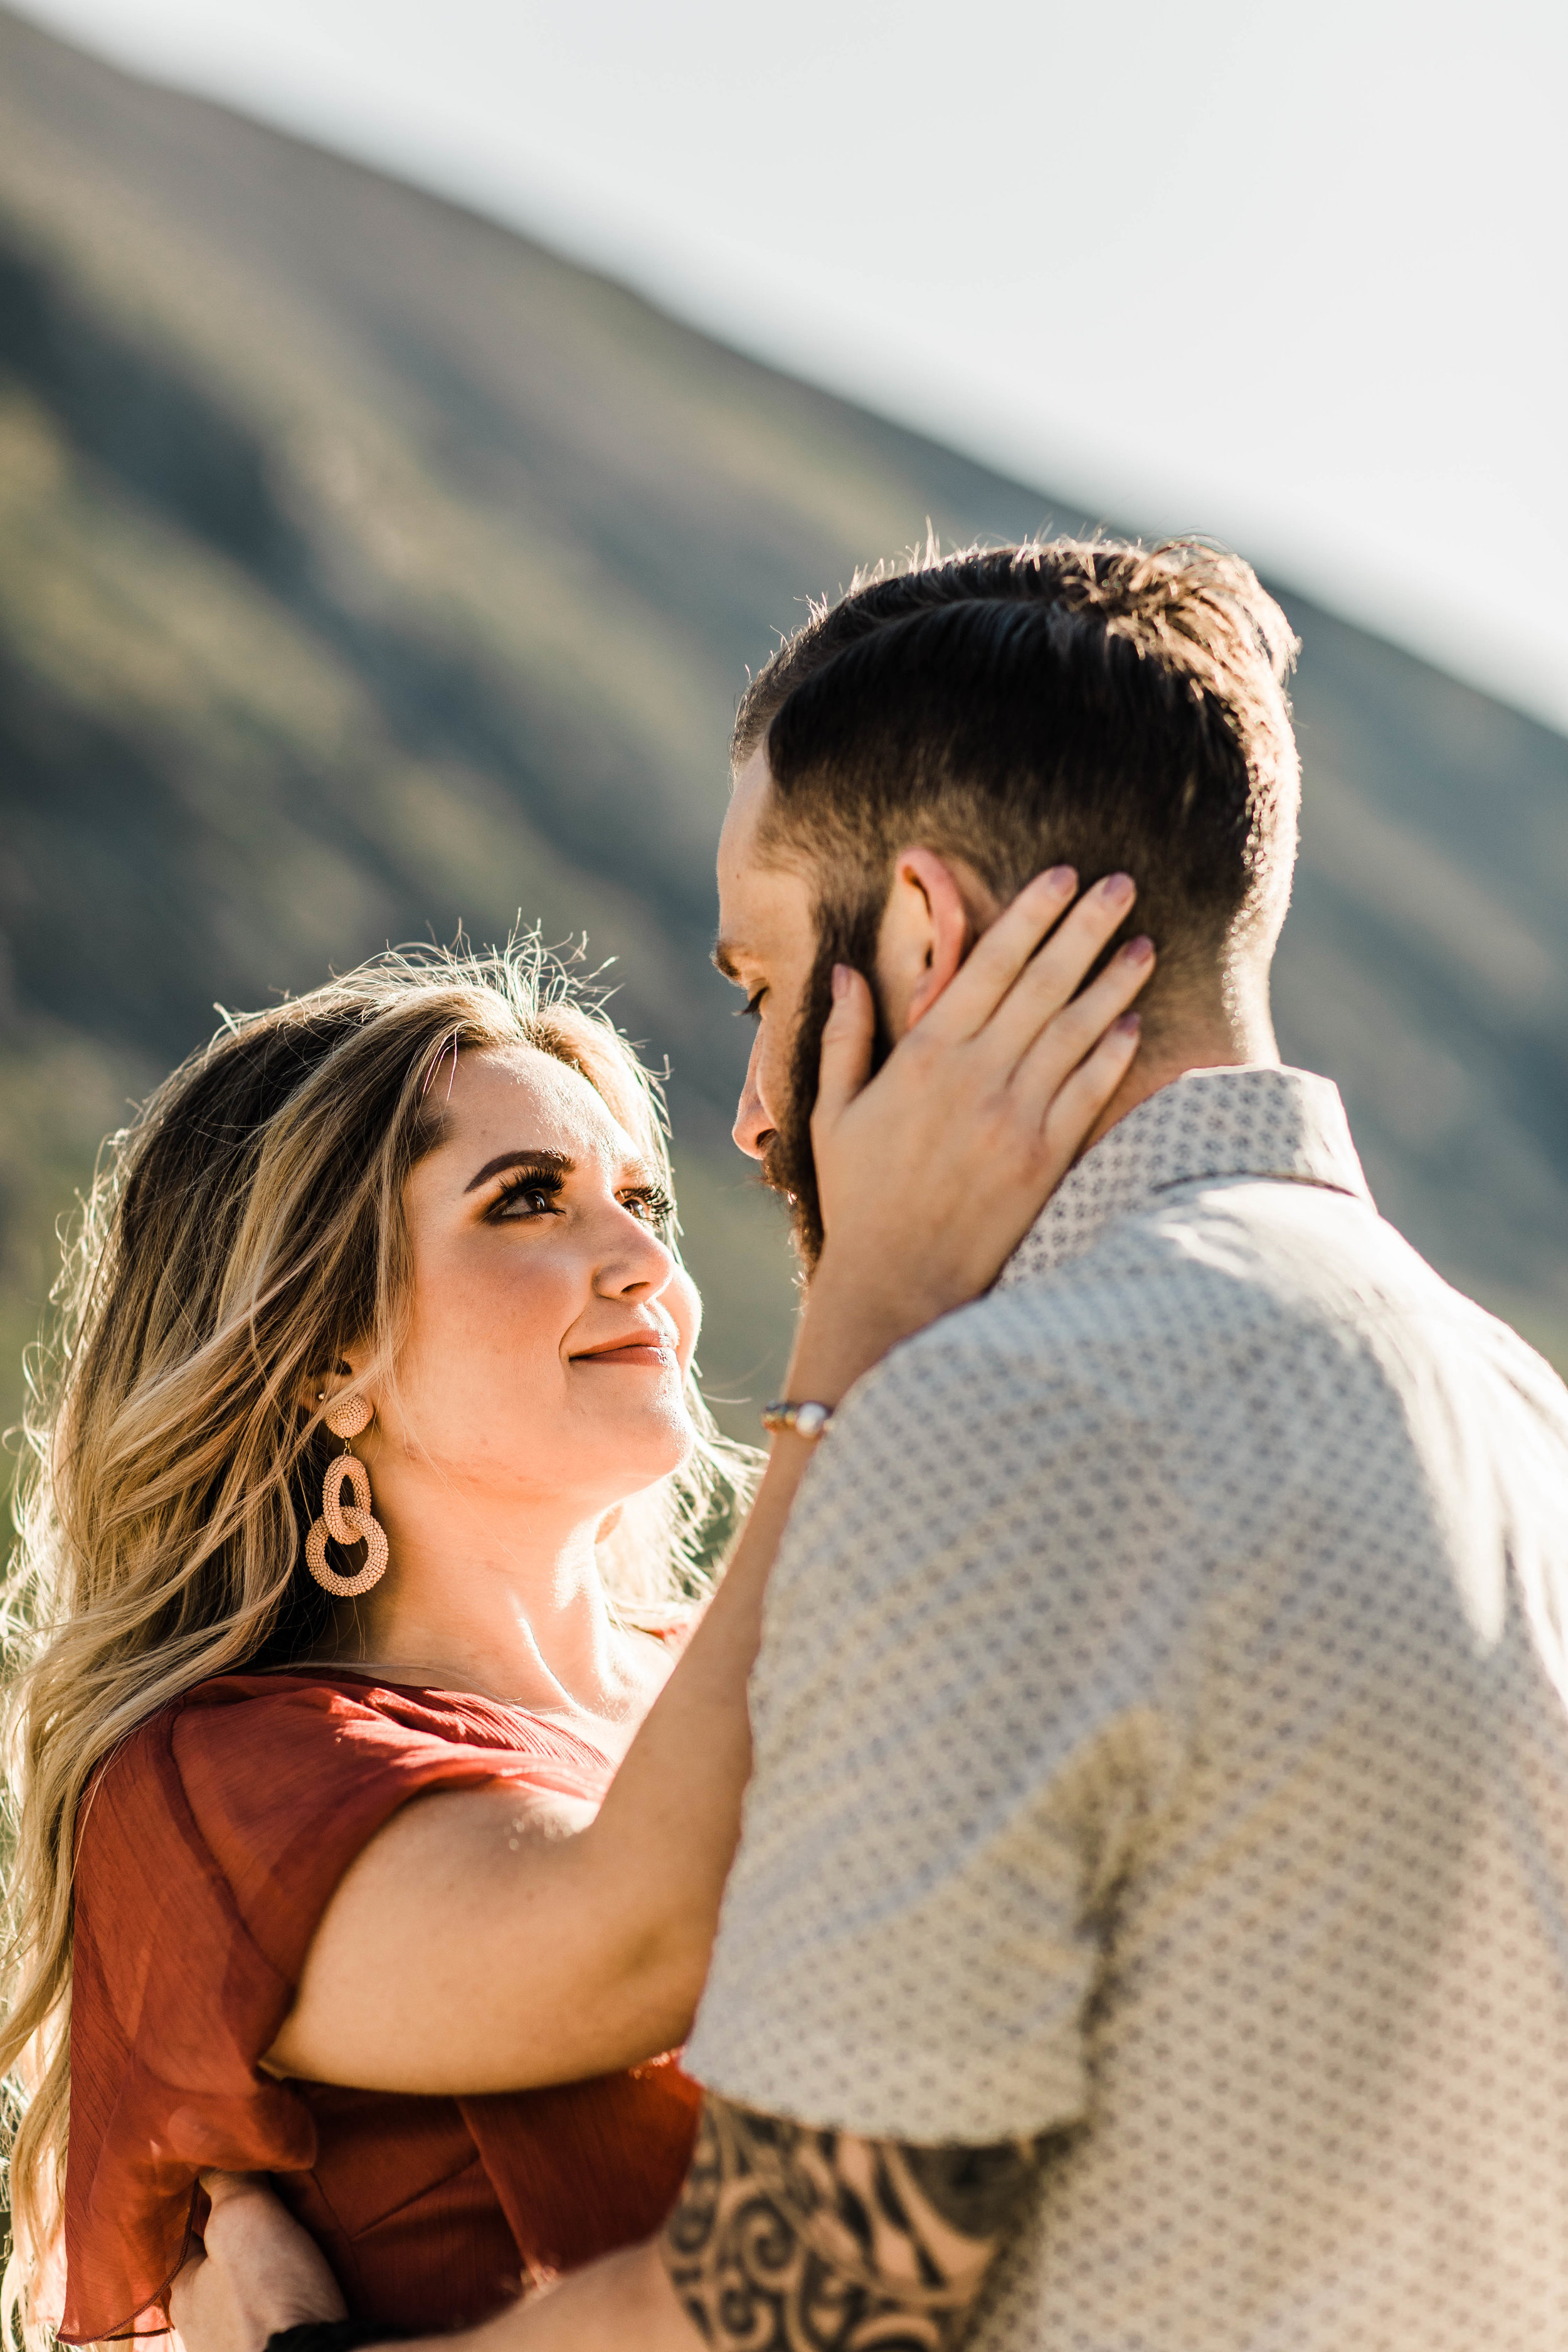 mountainside elopement style Rocky Mountain adventure photo session in Breckenridge Colorado